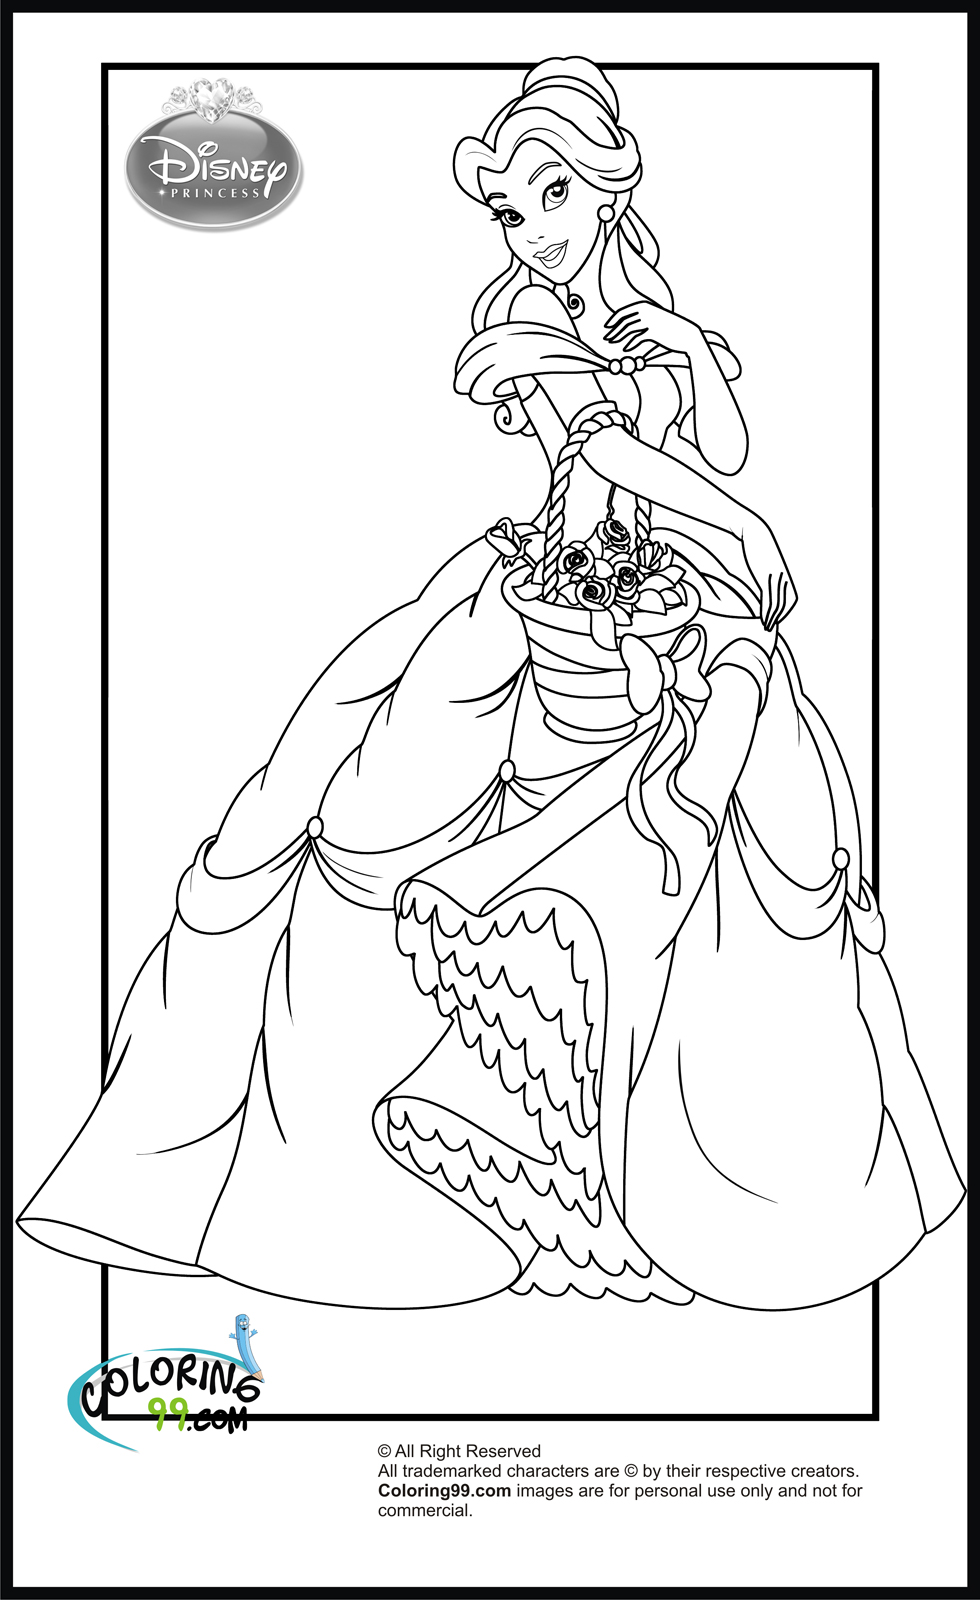 Disney Princess Coloring Pages | Minister Coloring | free printable coloring pages disney princesses